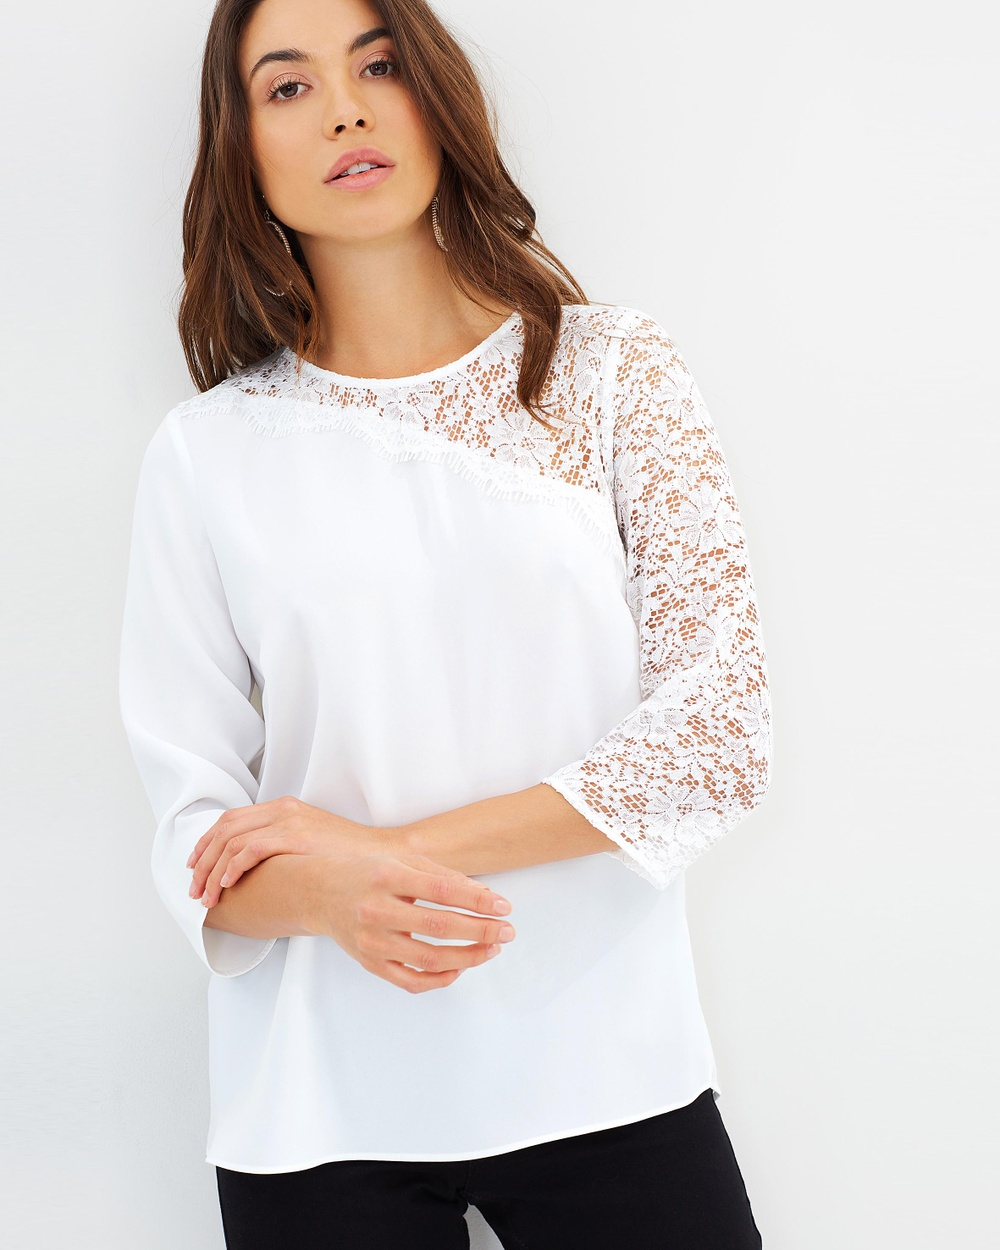 Dorothy Perkins Half & Half Lace Top Tops Ivory Half & Half Lace Top